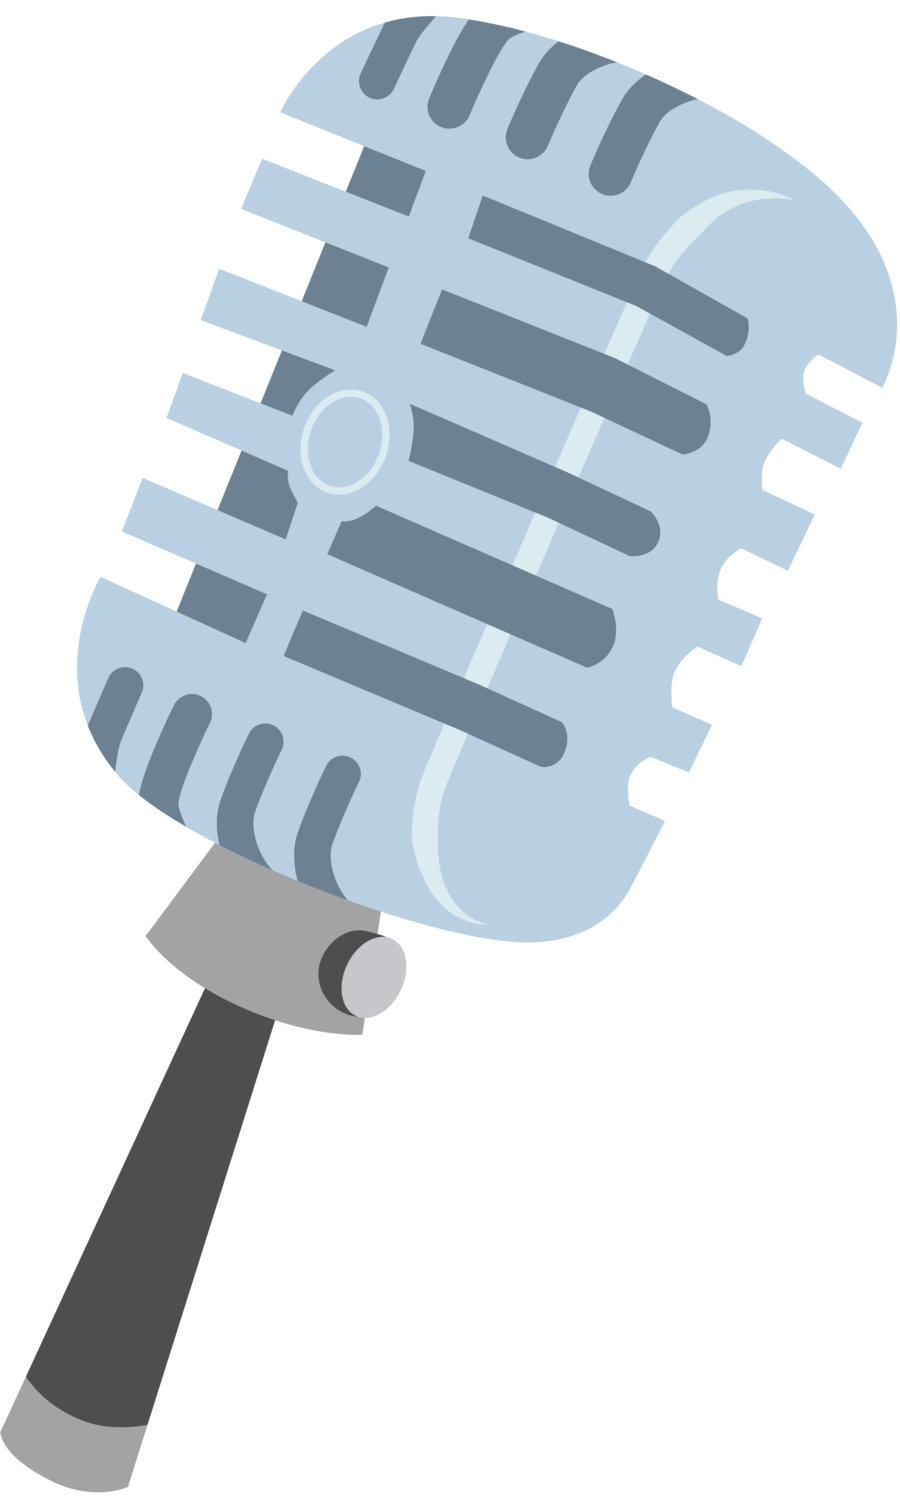 Microphone png cartoon. Image